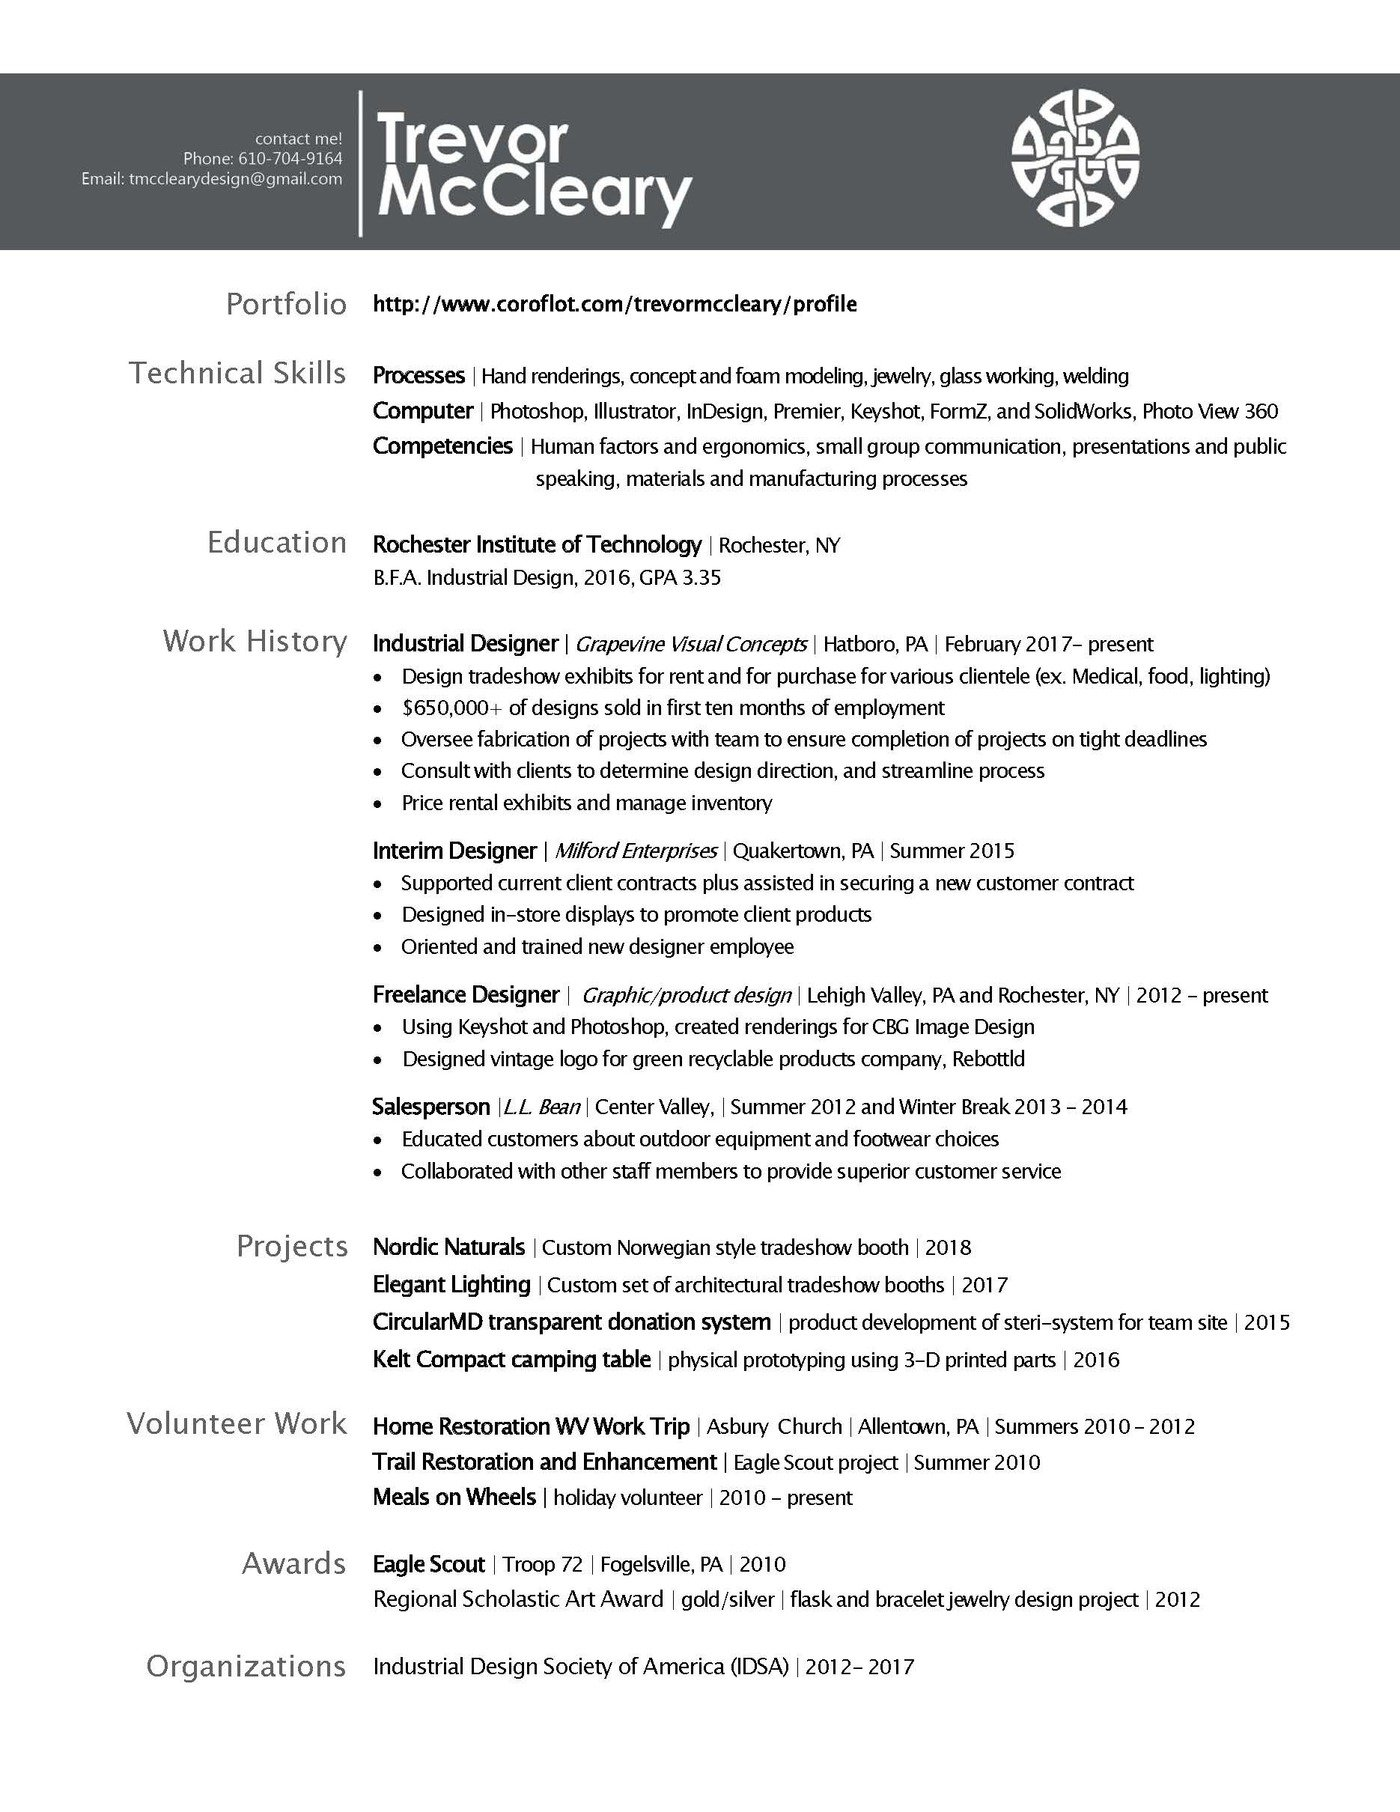 design resume by trevor mccleary at coroflot com